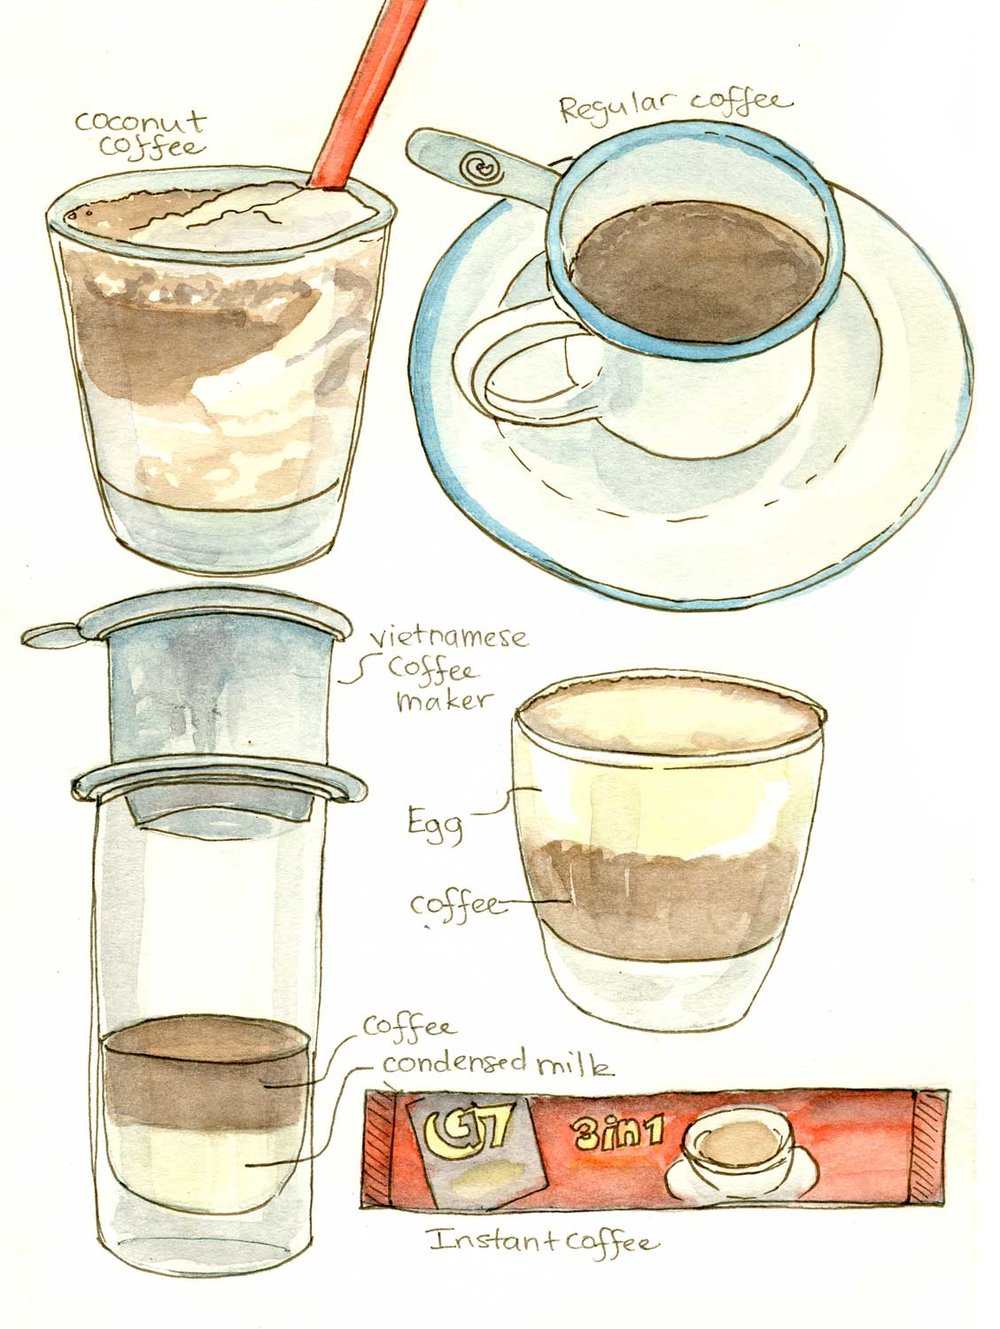 Field guide to coffee in Hanoi